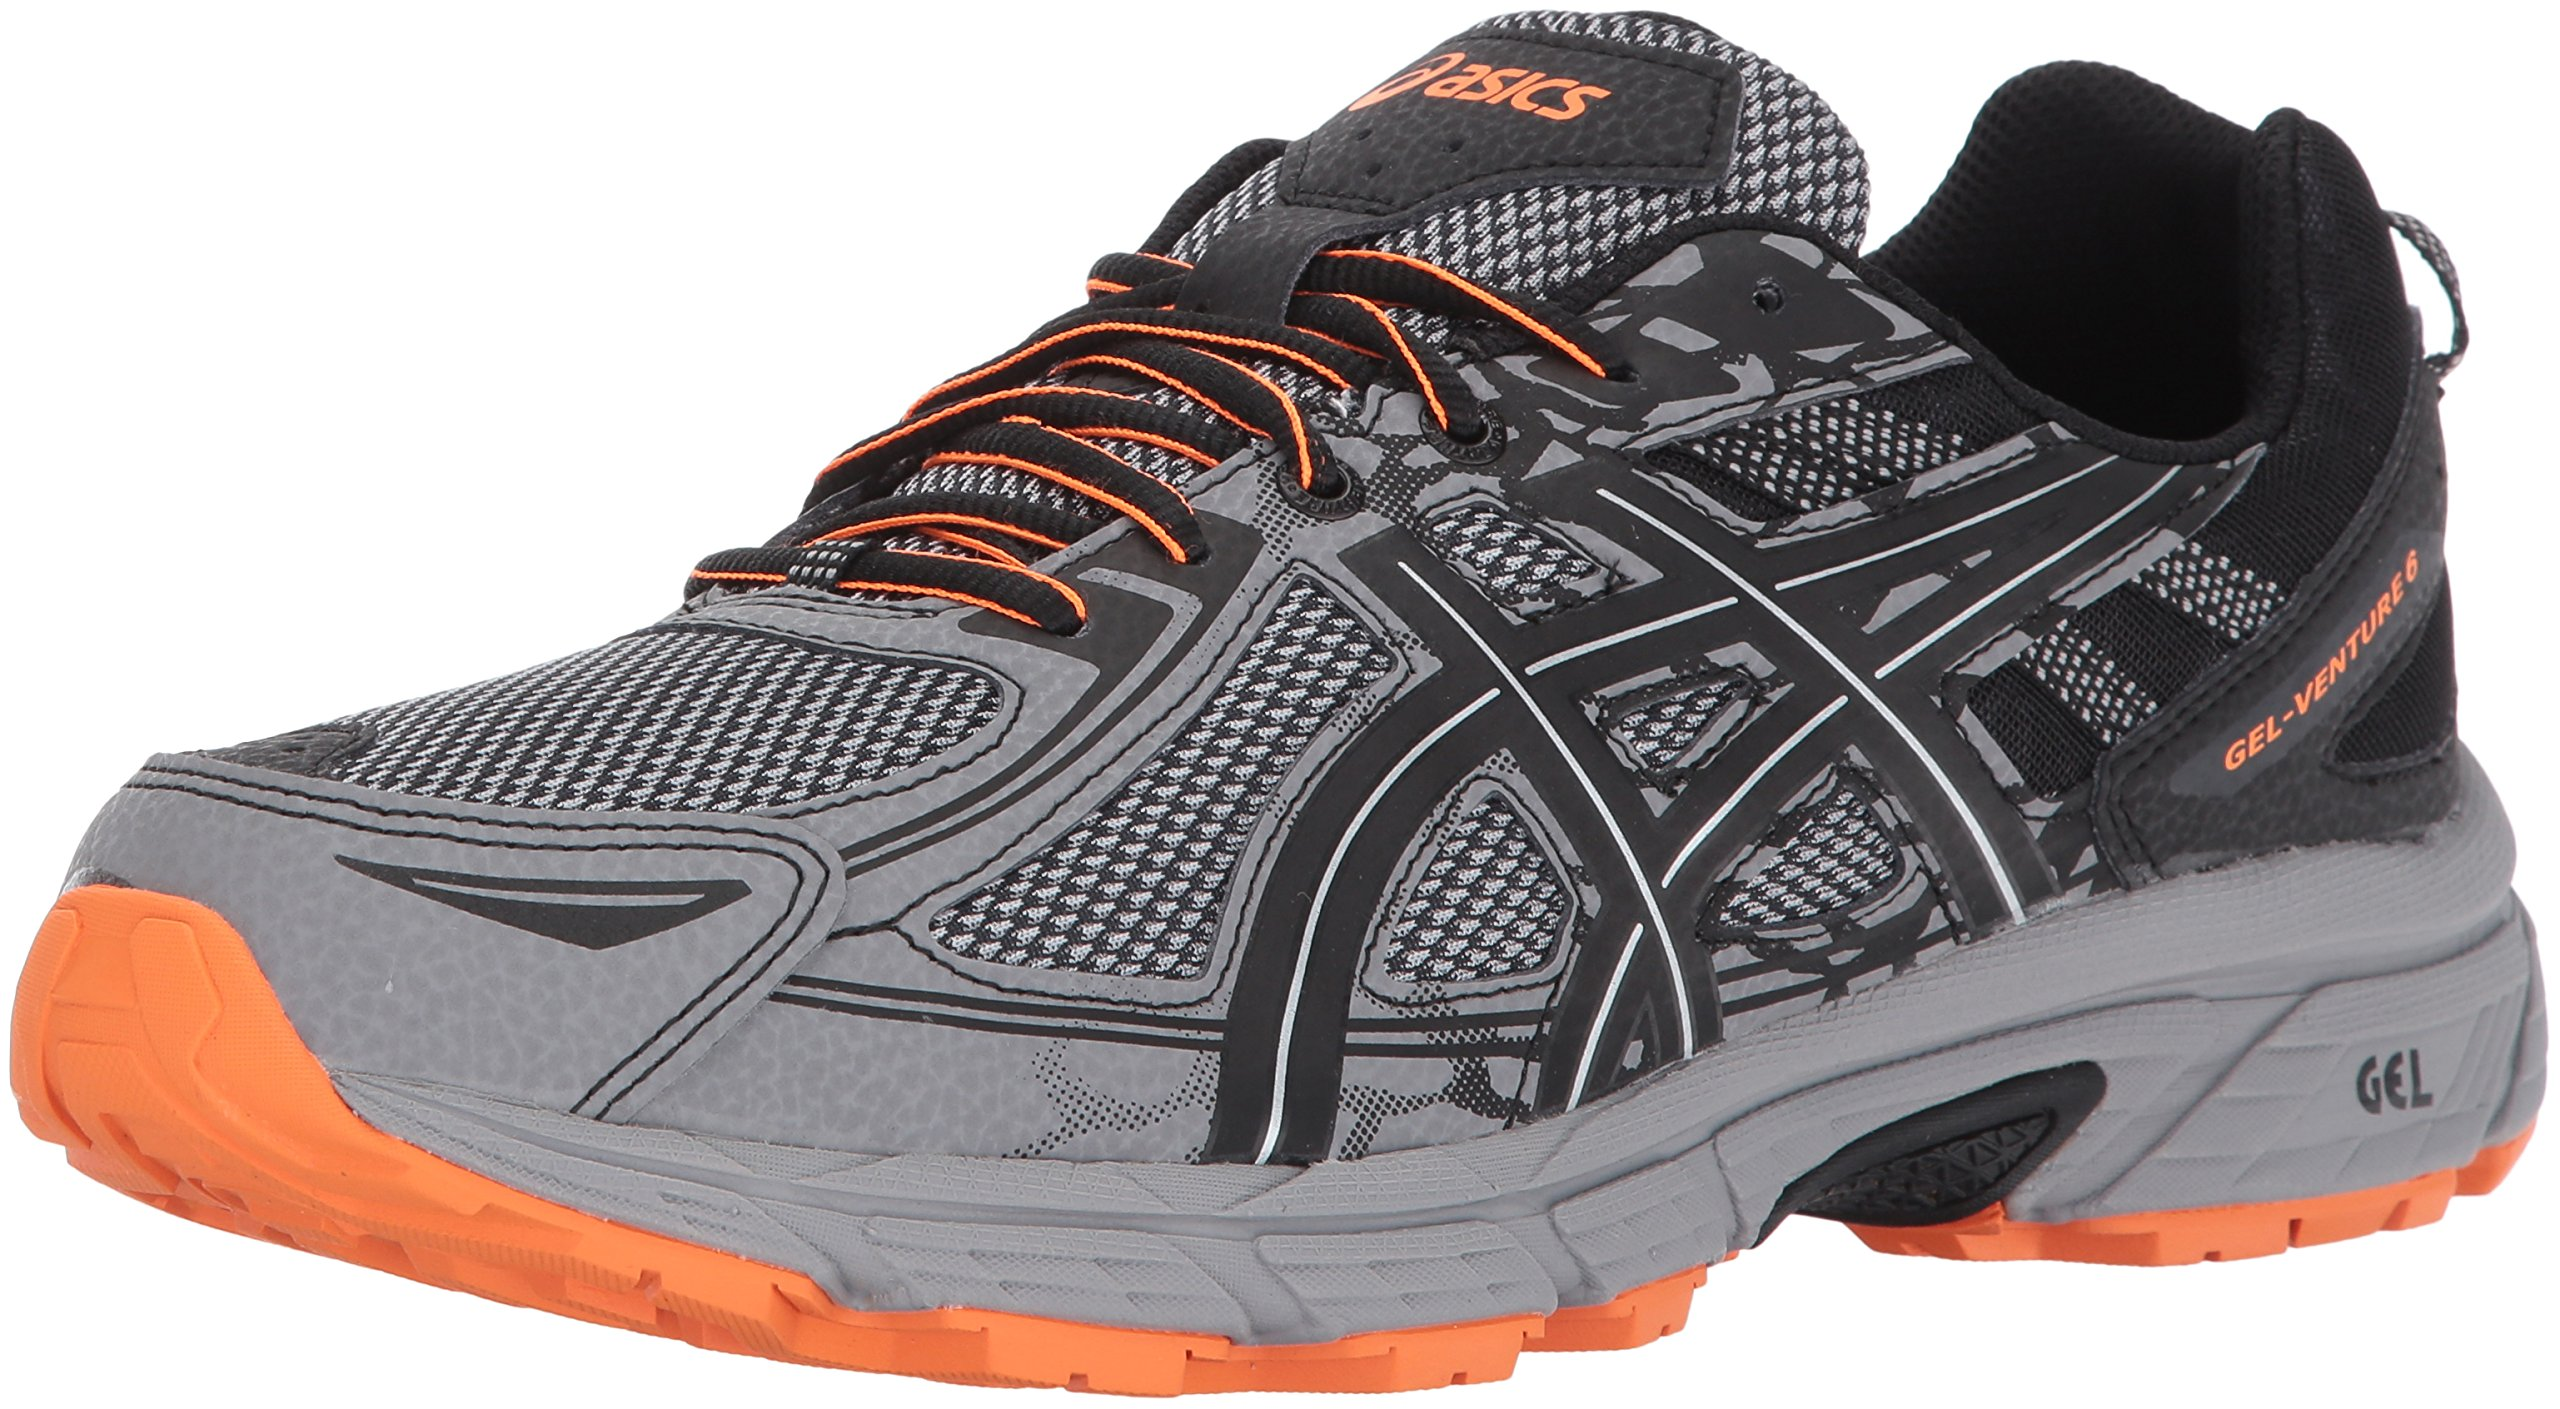 ASICS Mens Gel-Venture 6 Running Shoe, Frost Grey/Phantom/Black, 14 4E US by ASICS